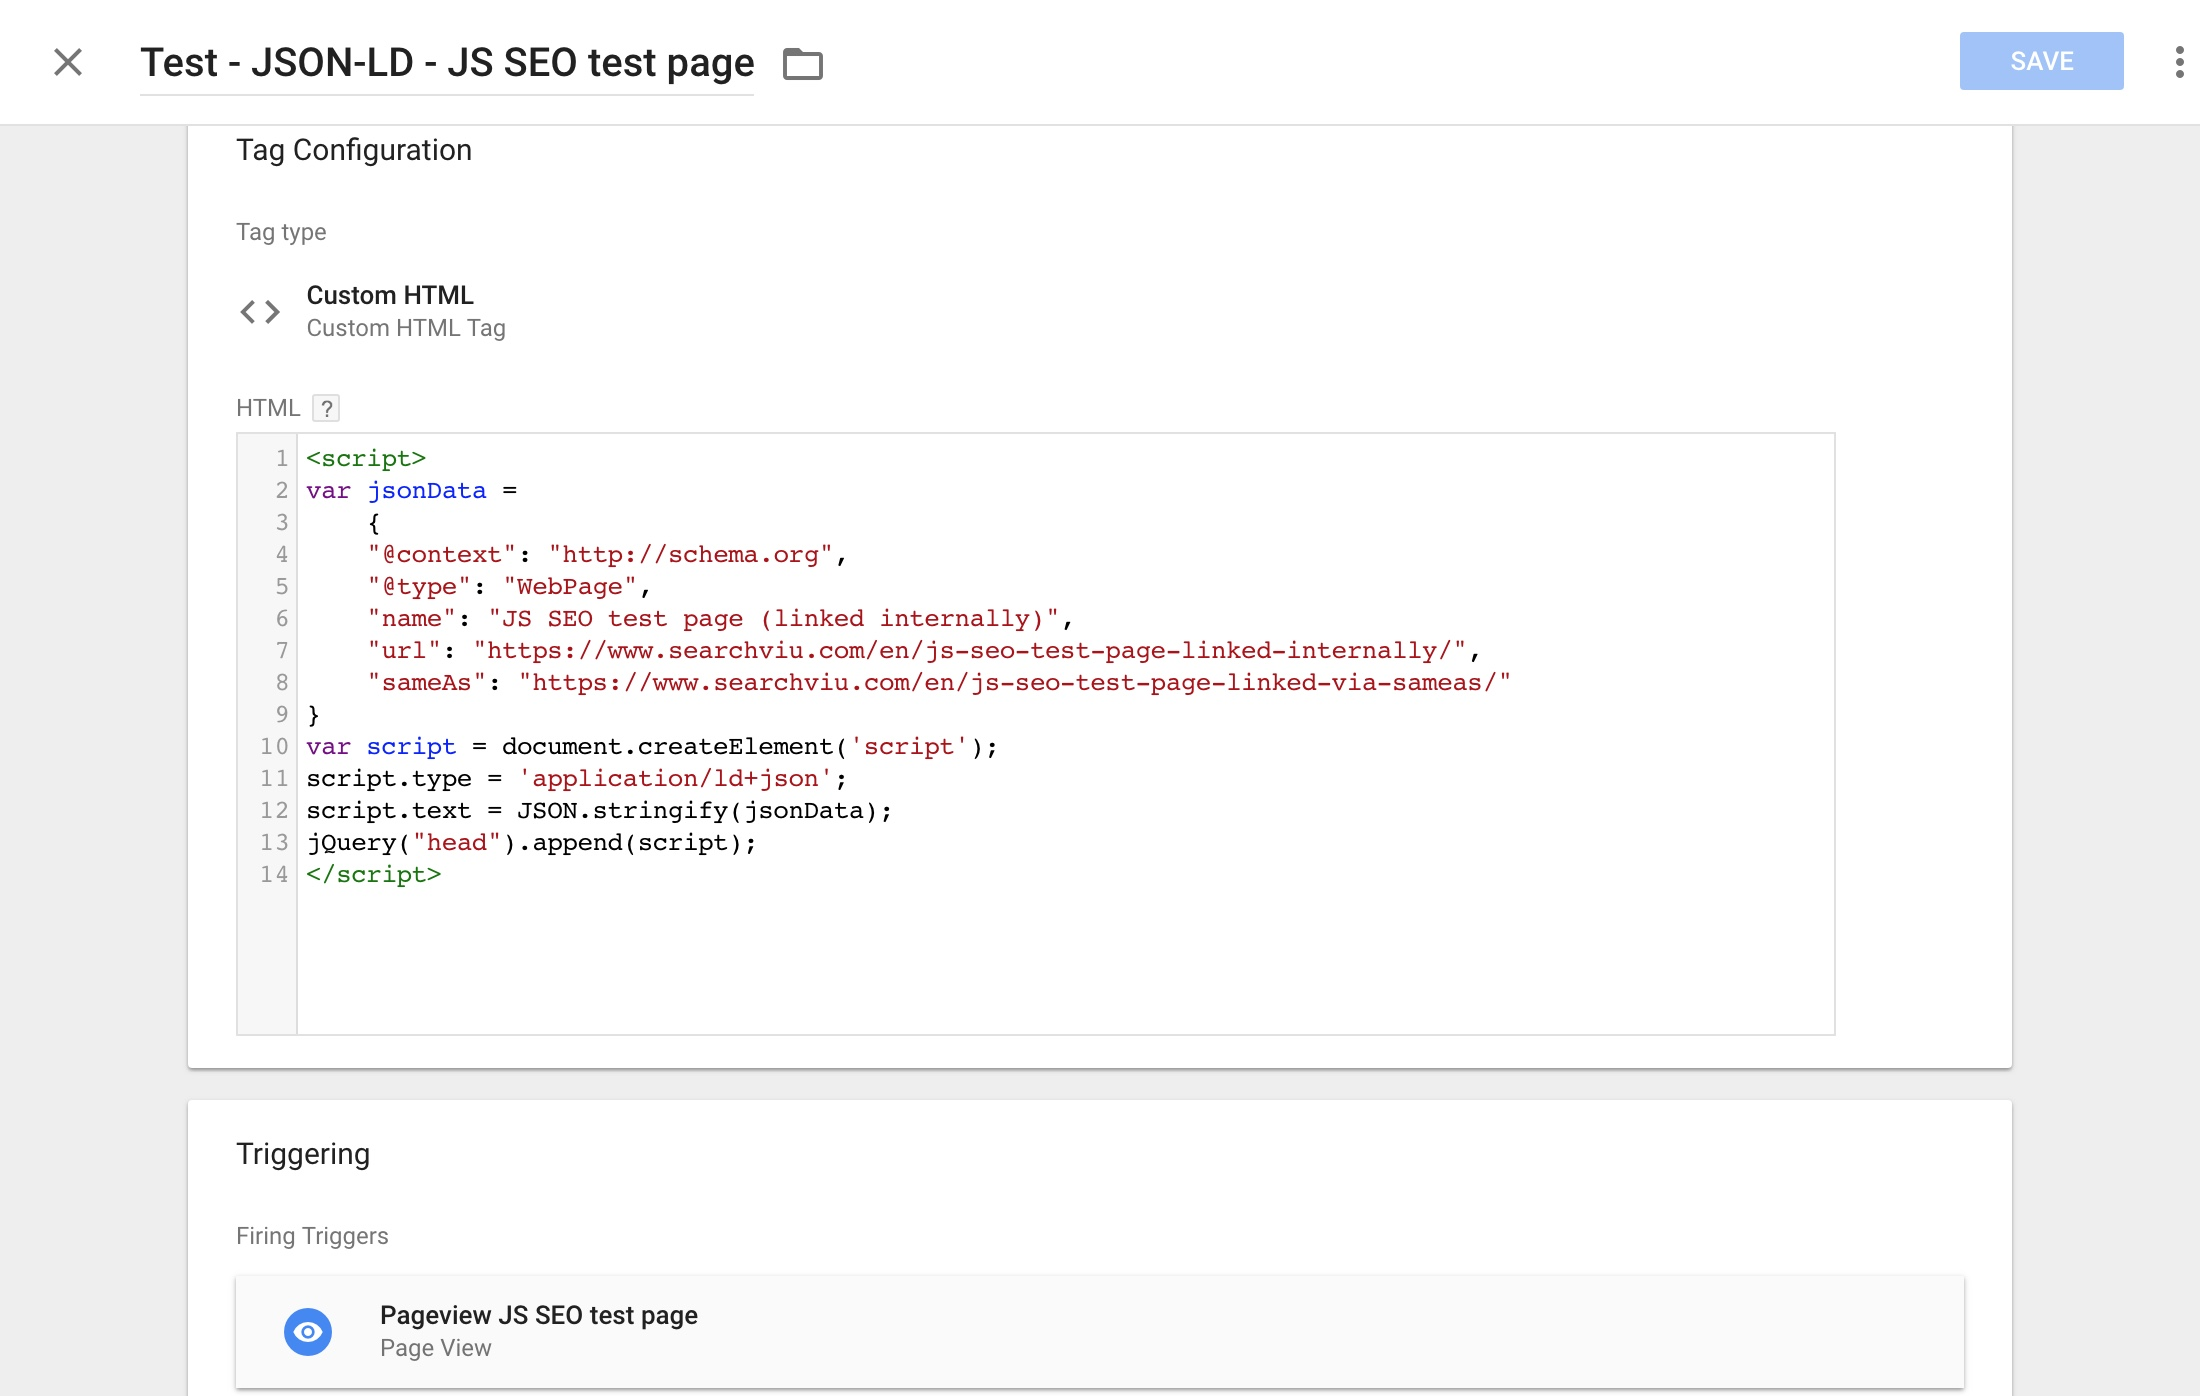 the json-ld test setup in google tag manager